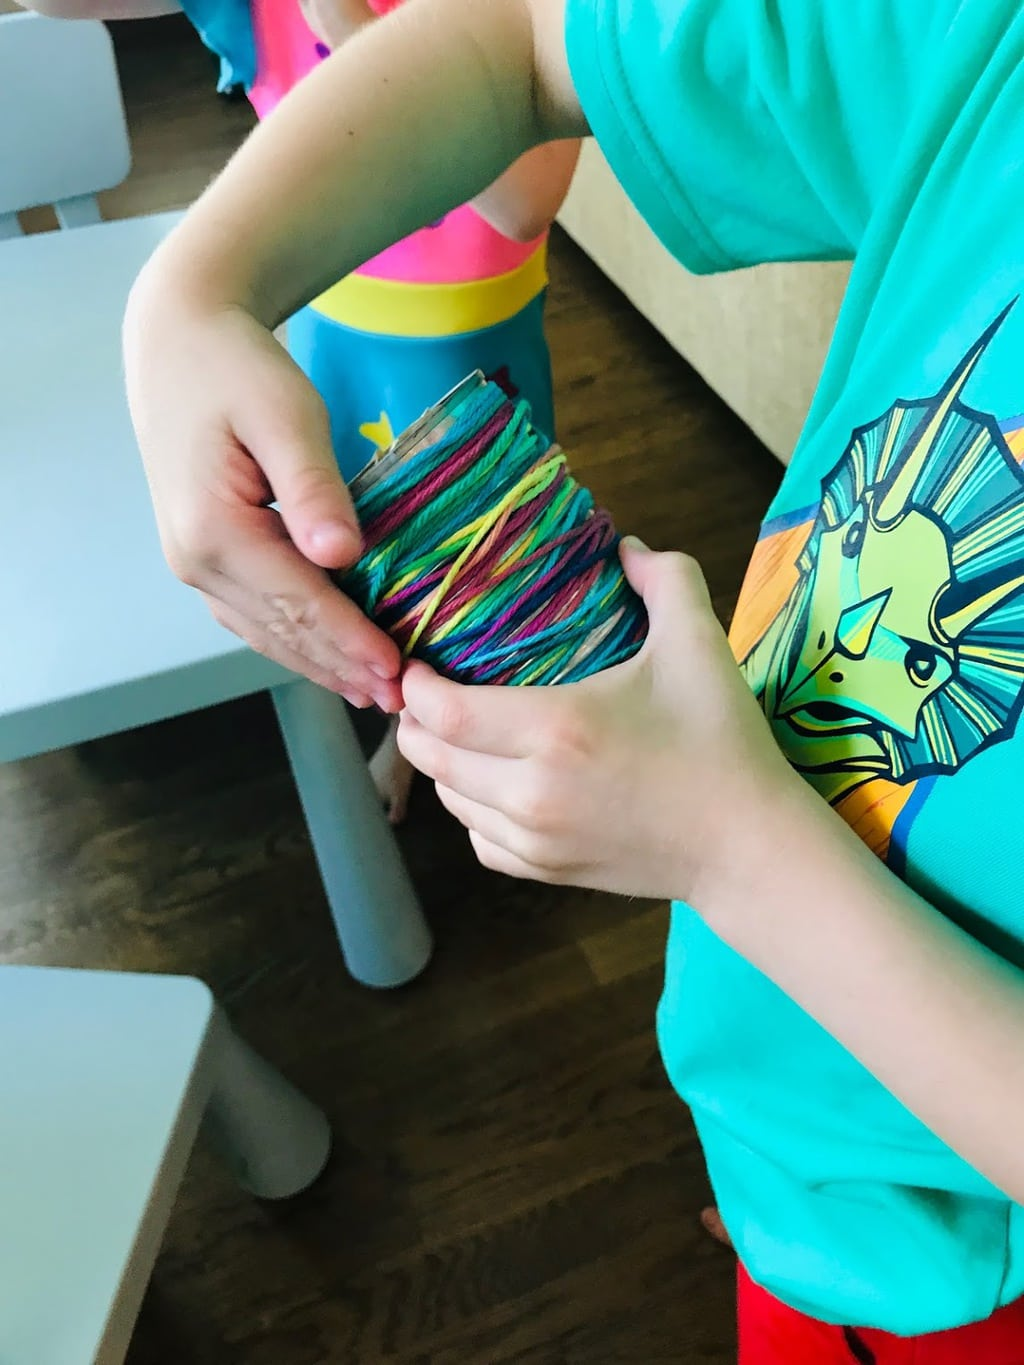 child wrapping string around can